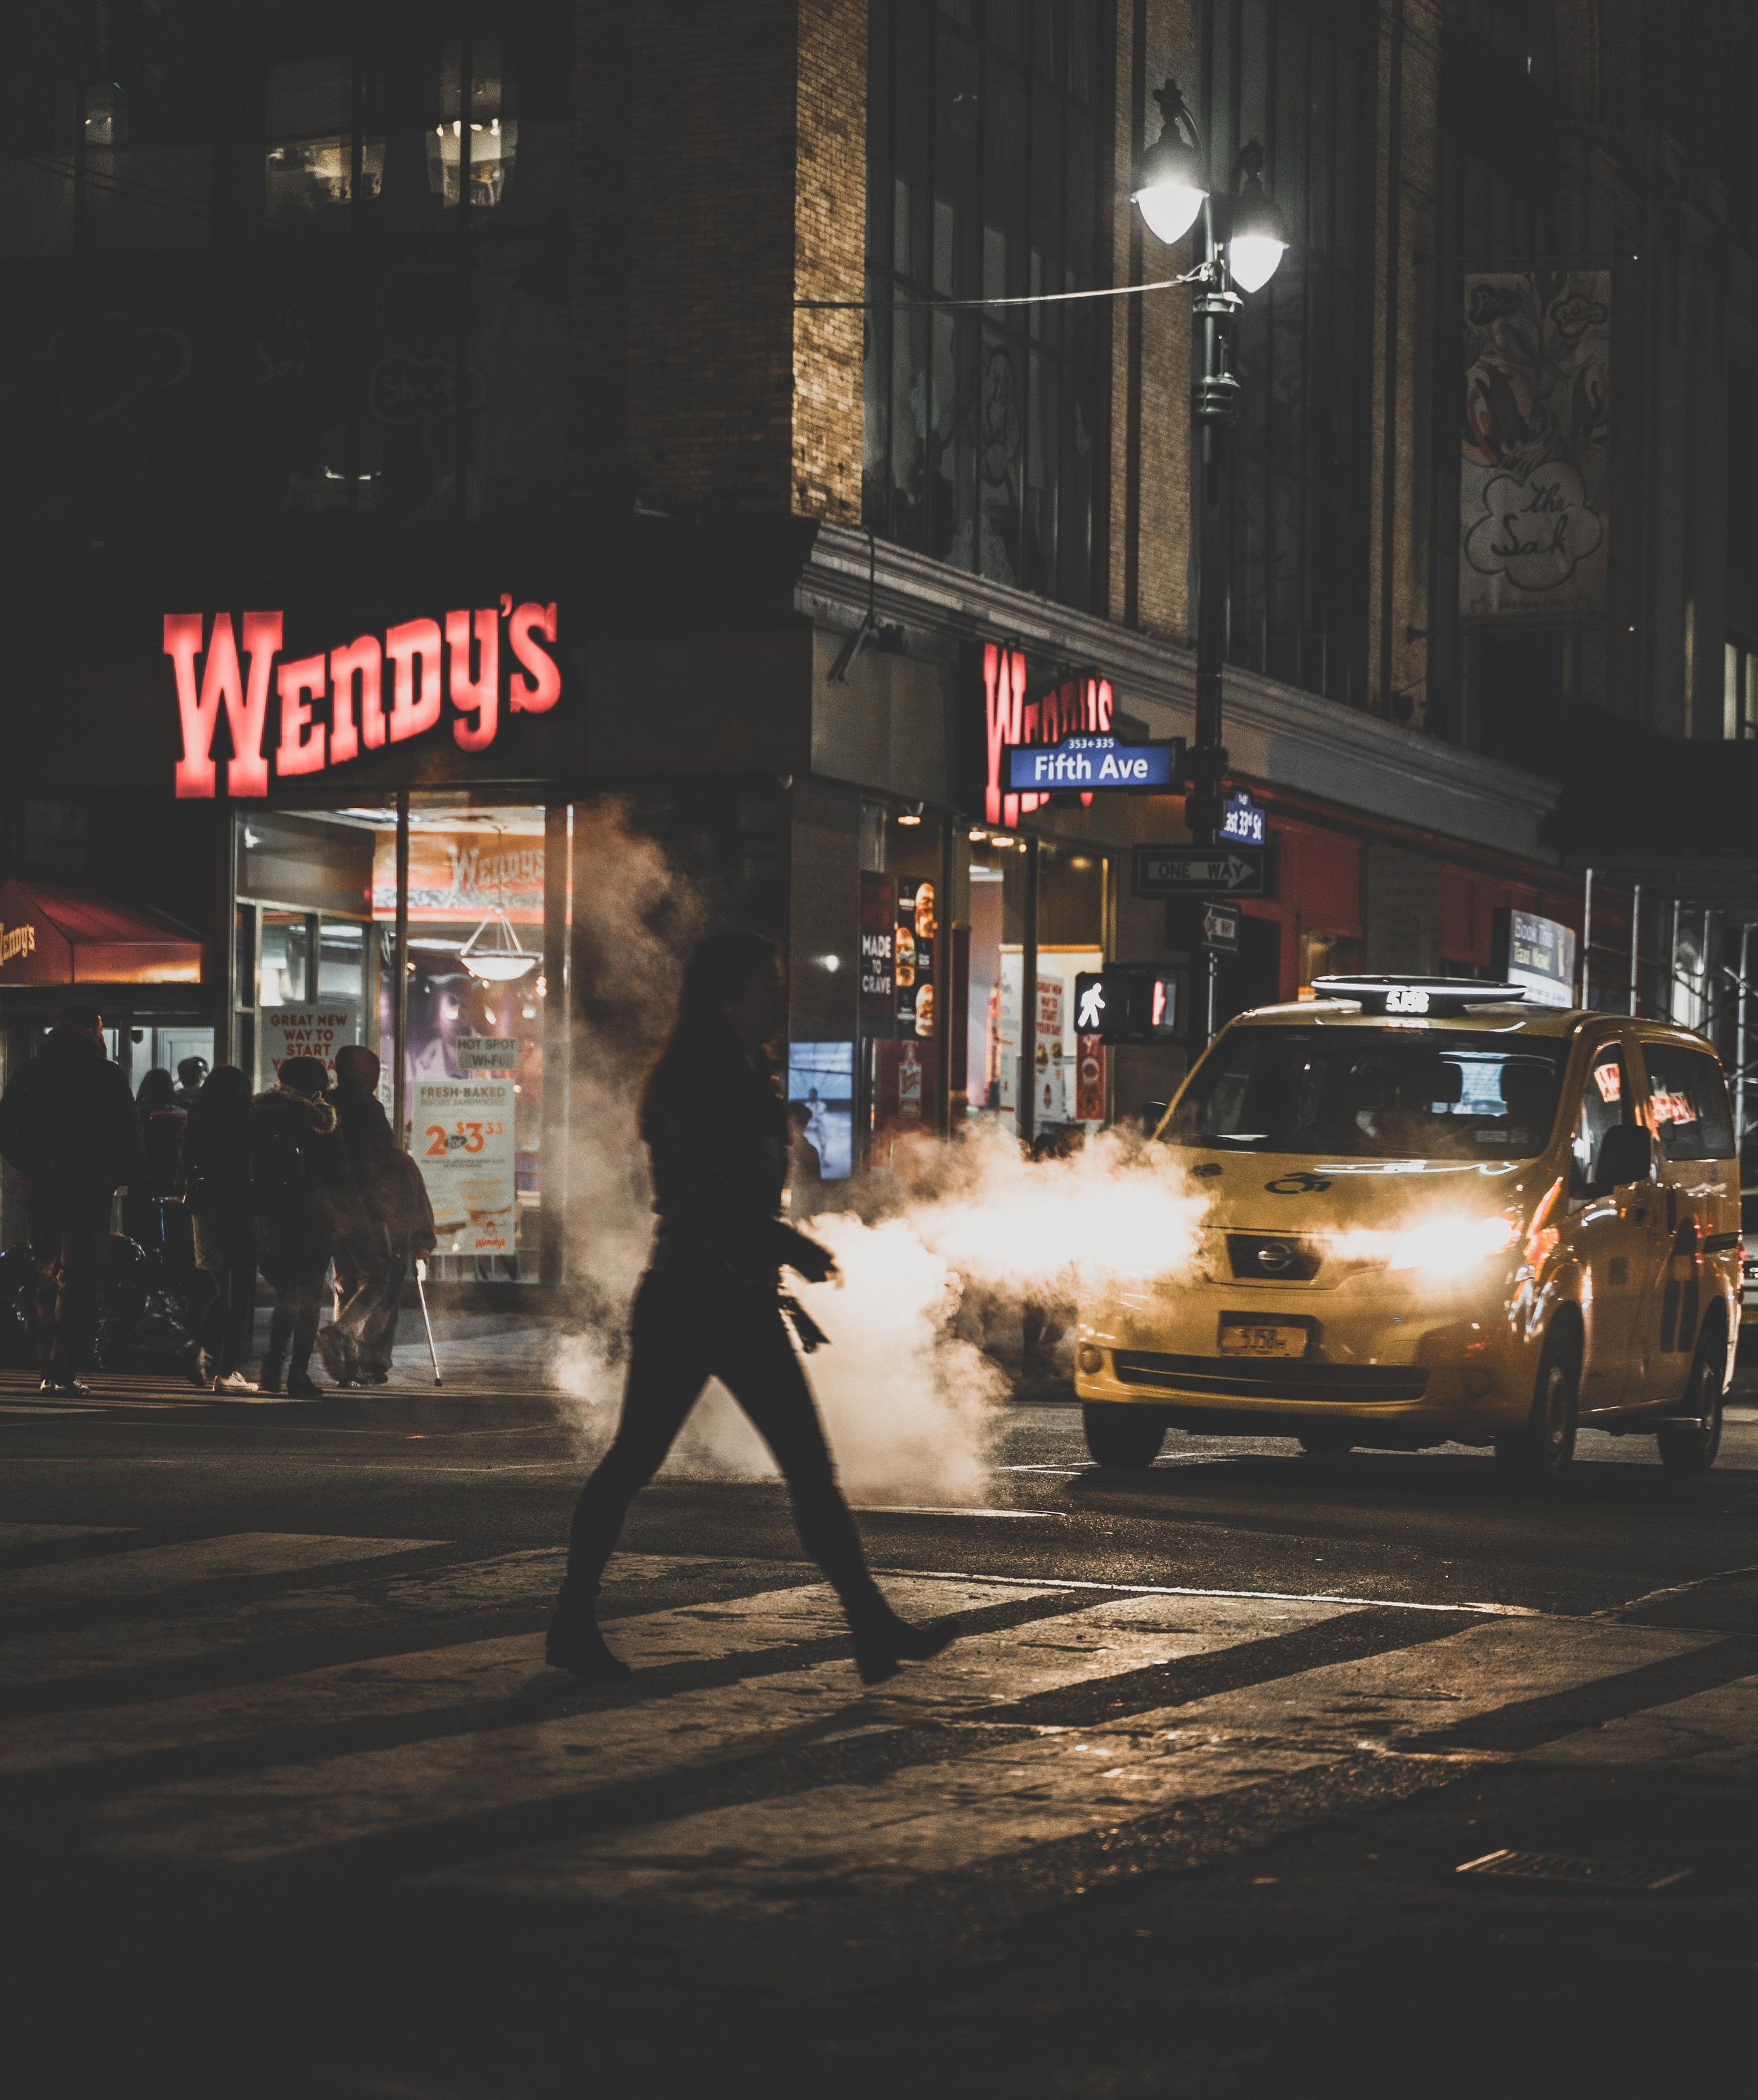 New York Yellow taxi with steam.jpg